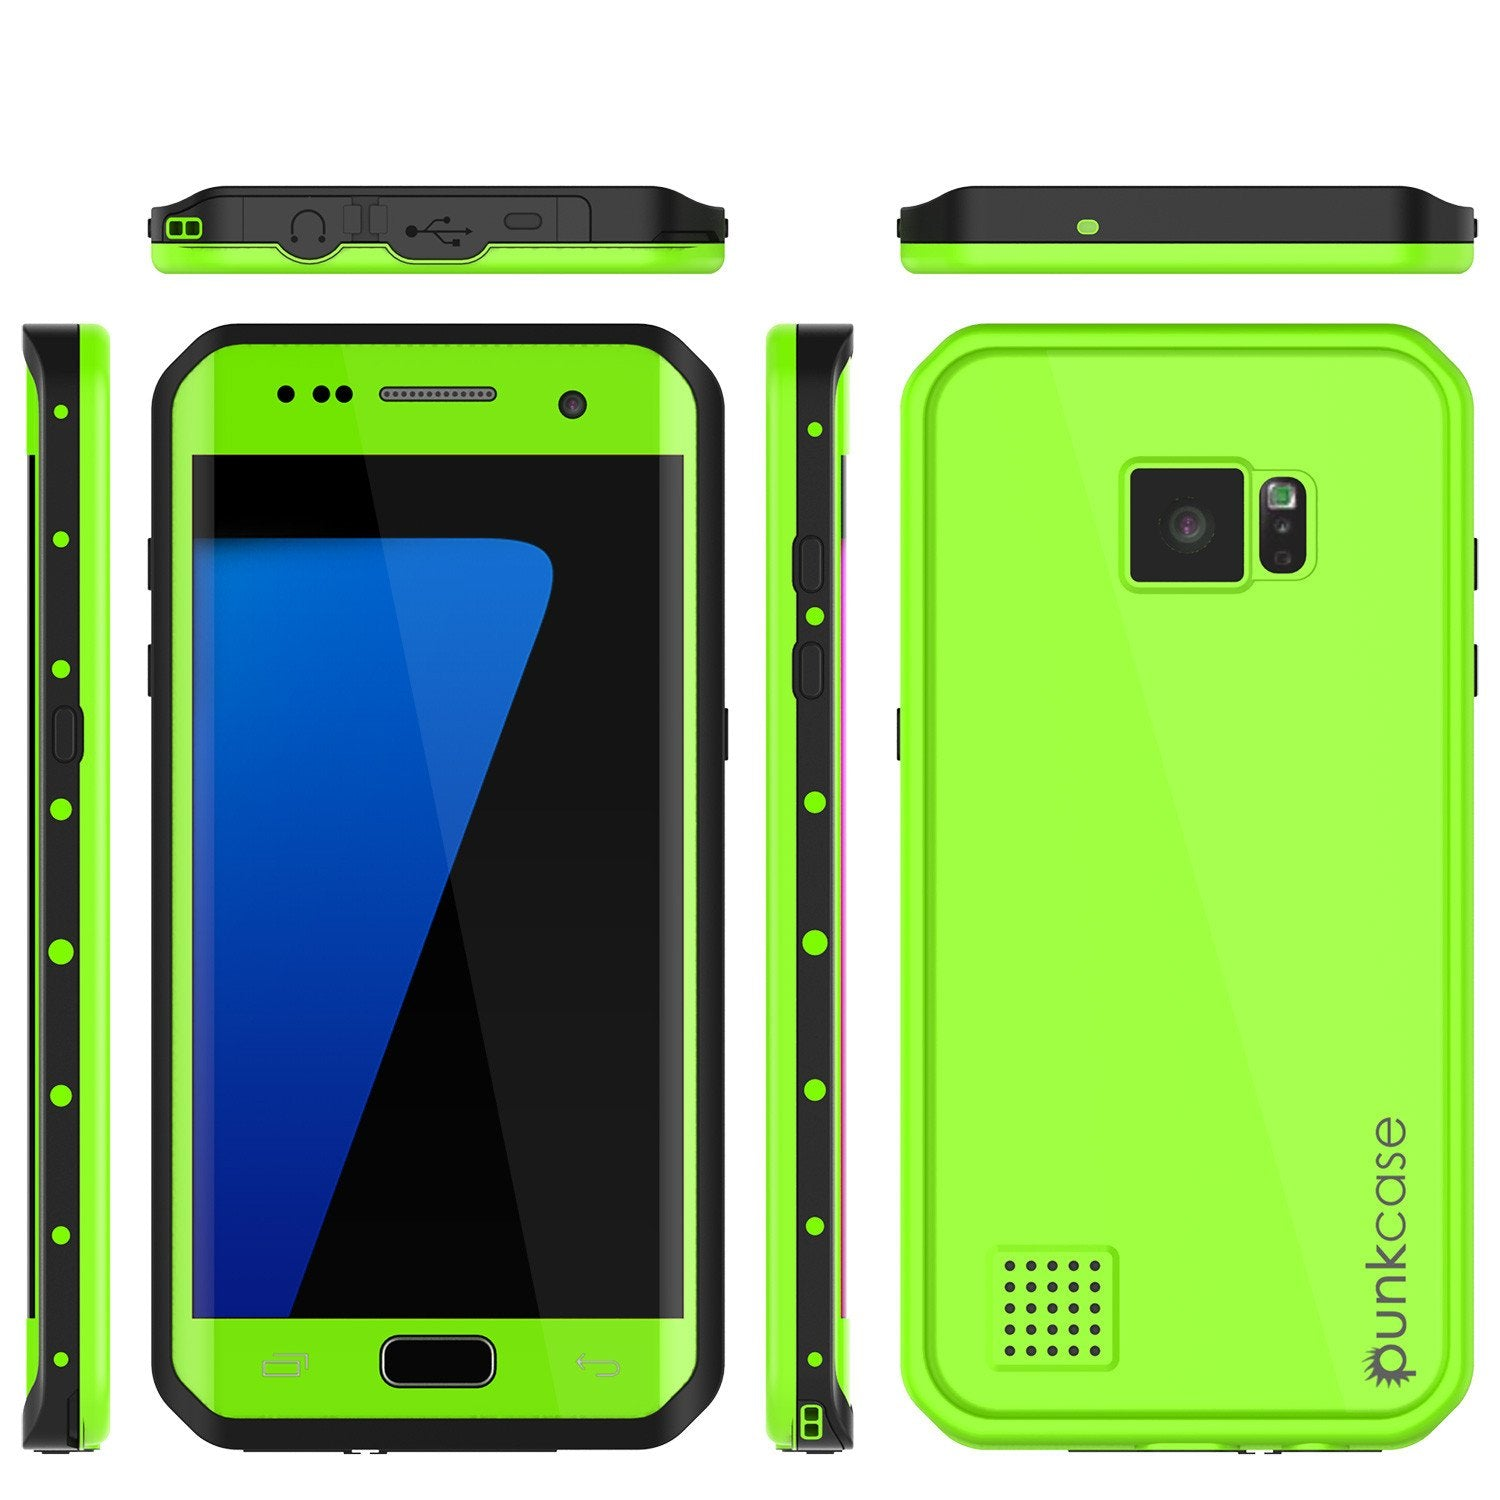 Galaxy S7 EDGE Waterproof Case PunkCase StudStar Light Green Thin 6.6ft Underwater IP68 ShockProof - PunkCase NZ